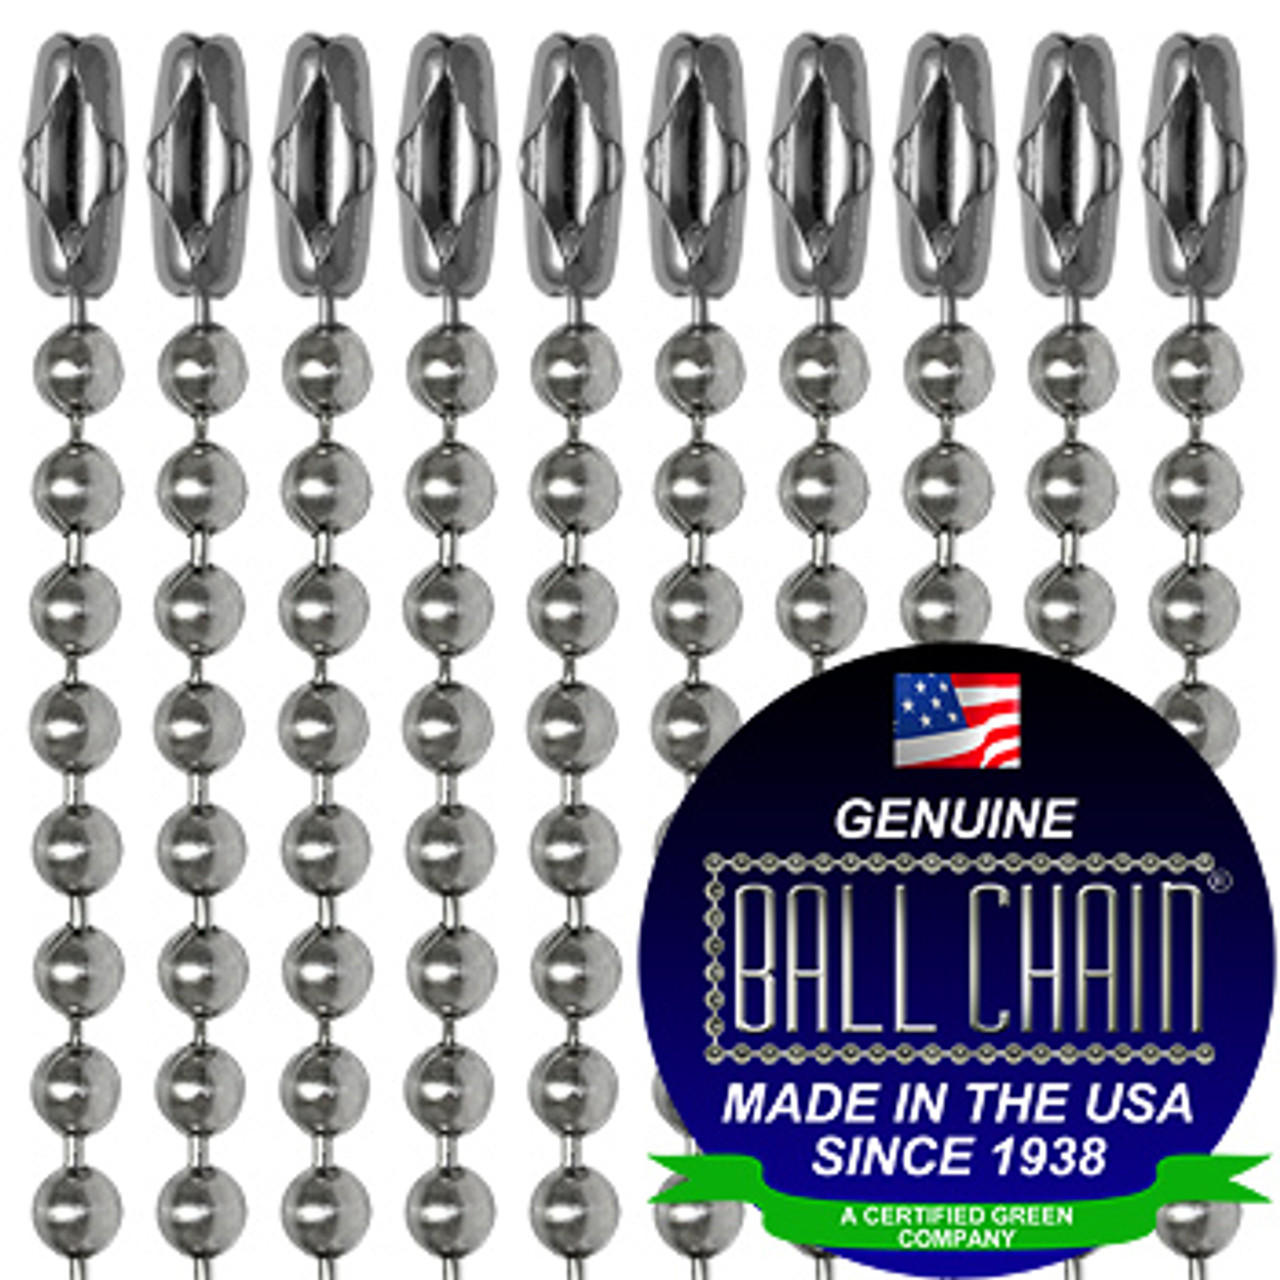 #3 Stainless Steel Ball Chains with Connector - 27 Inch Length